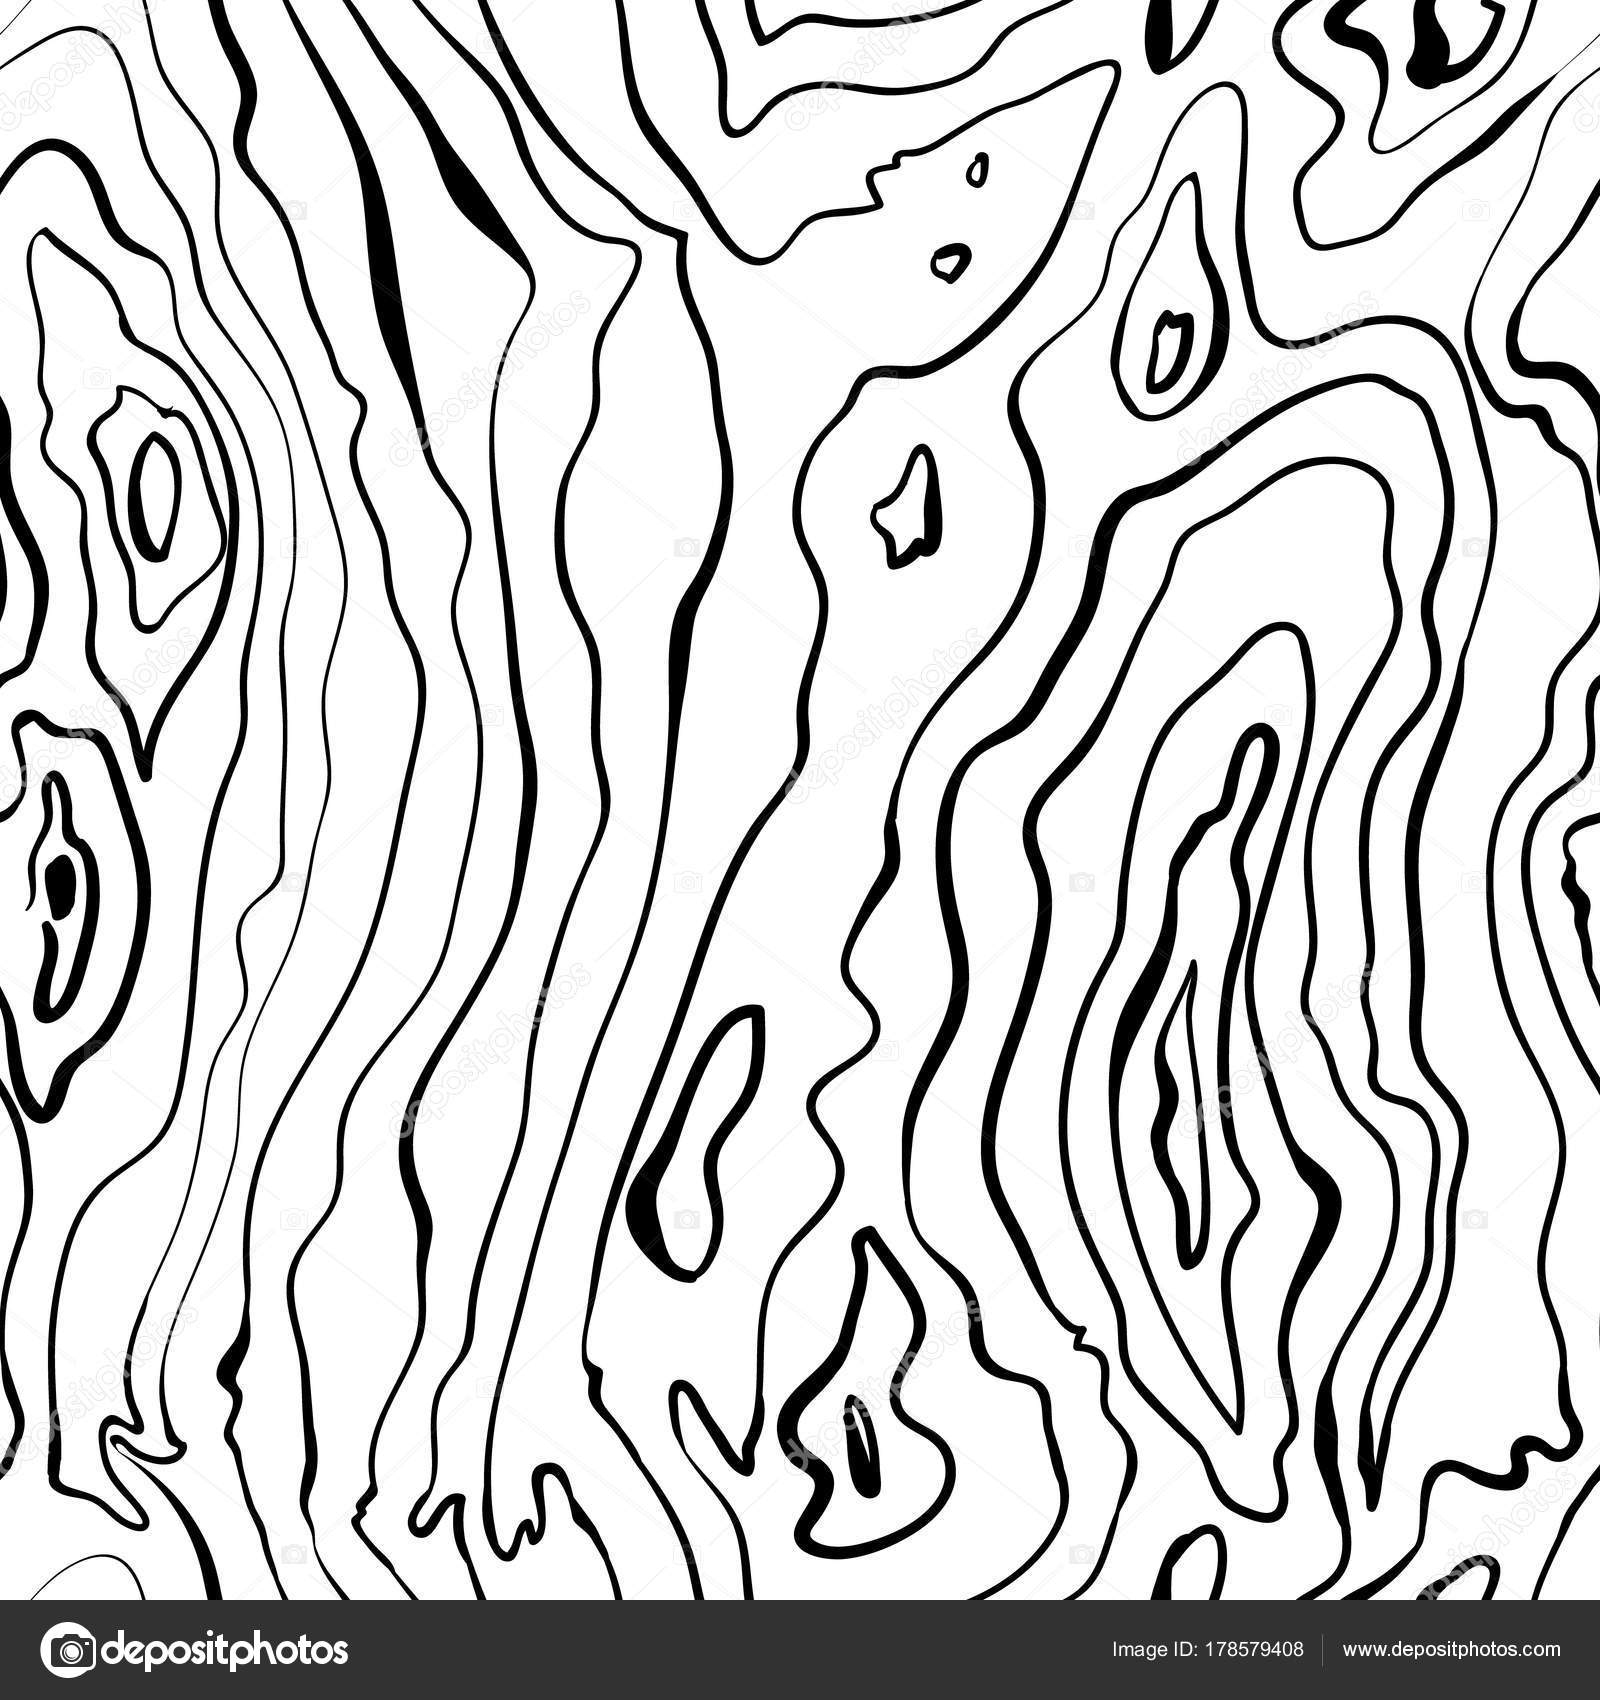 Wood Grain Drawing at GetDrawings com | Free for personal use Wood